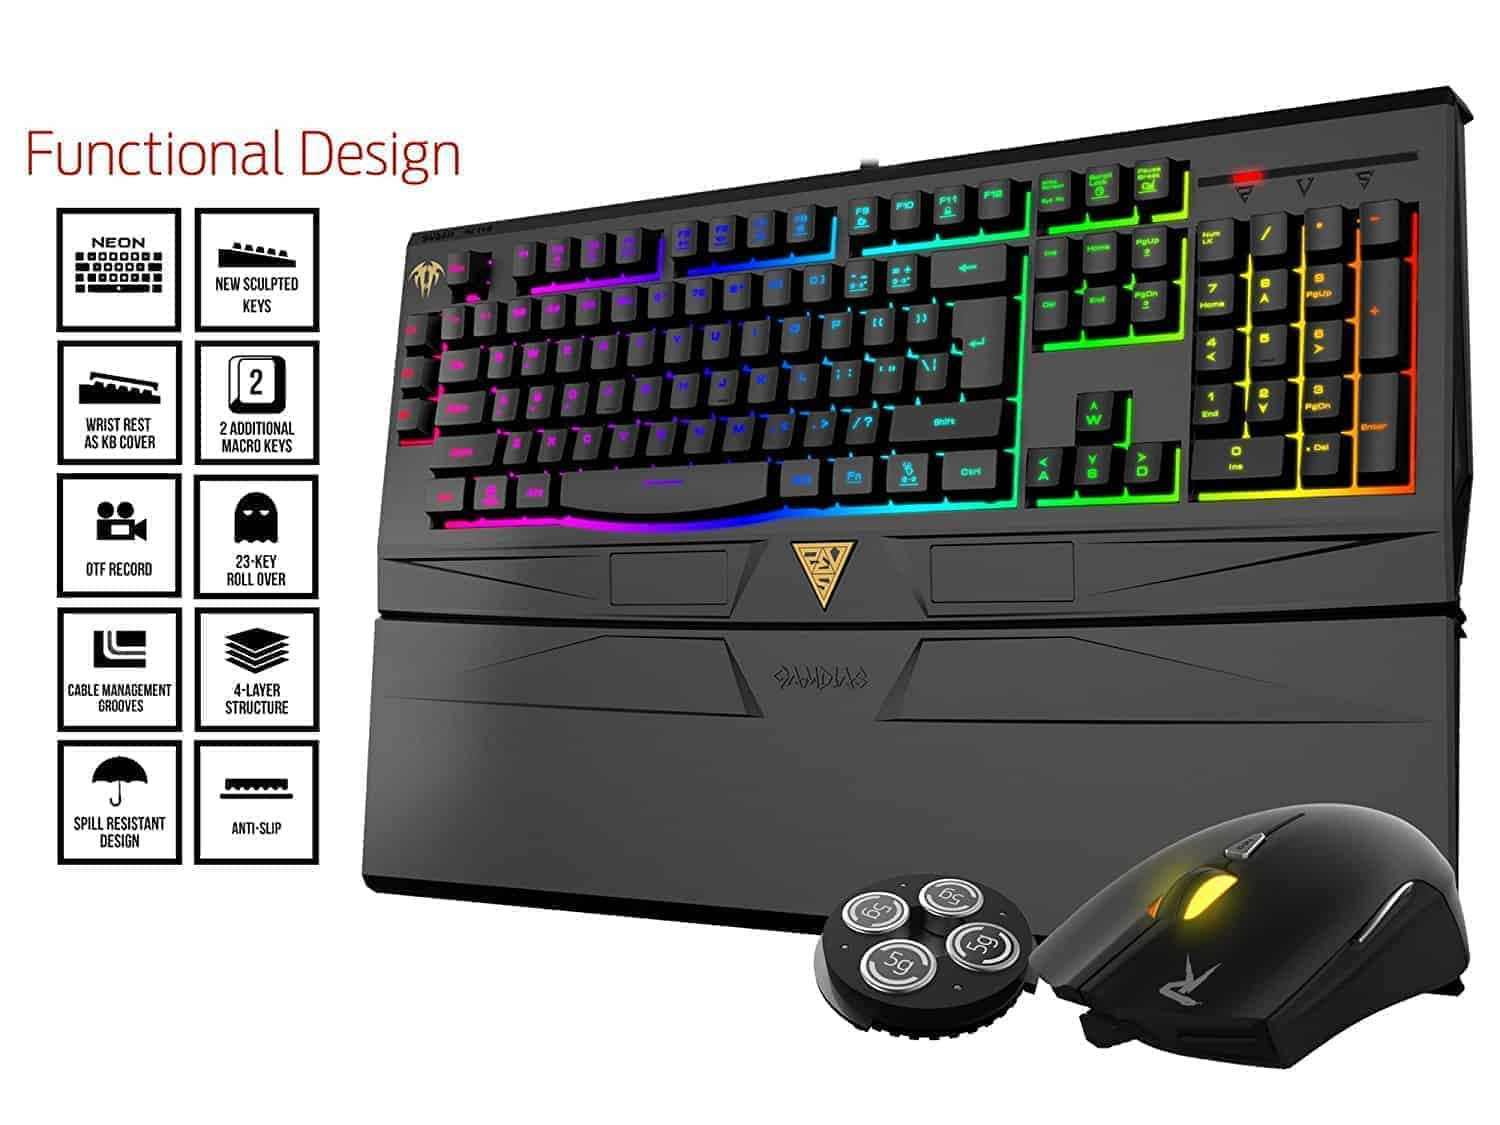 054ec6193e9 Gamdias ARES 7 Color-GKC6011 Gaming (Membrane keyboard + mouse 4000DPI)  (GKC6011